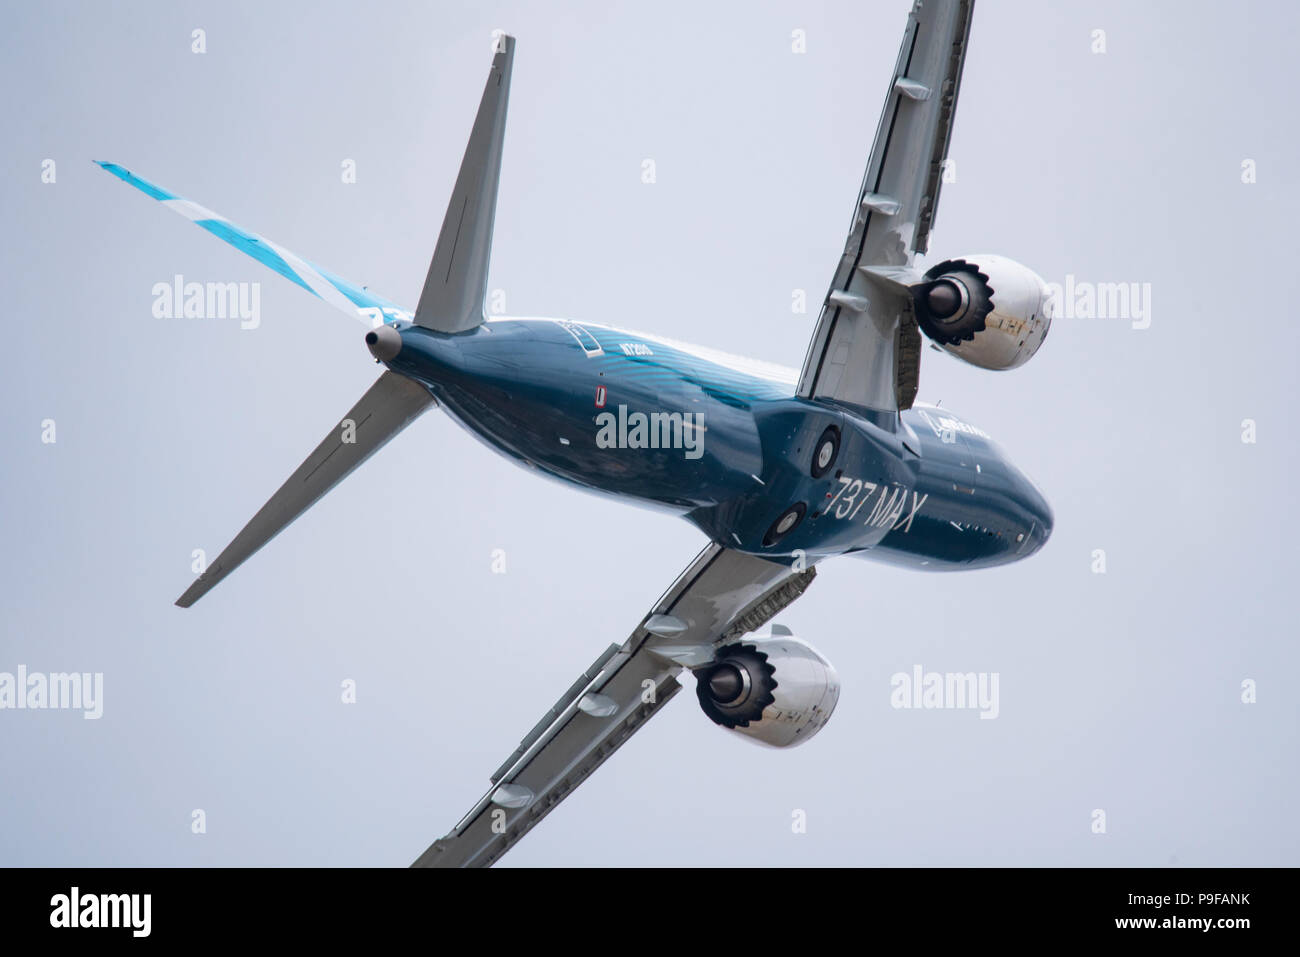 boeing-737-700-max-airliner-jet-plane-at-farnborough-airport-hampshire-uk-farnborough-international-airshow-2018-aerospace-trade-event-P9FANK.jpg